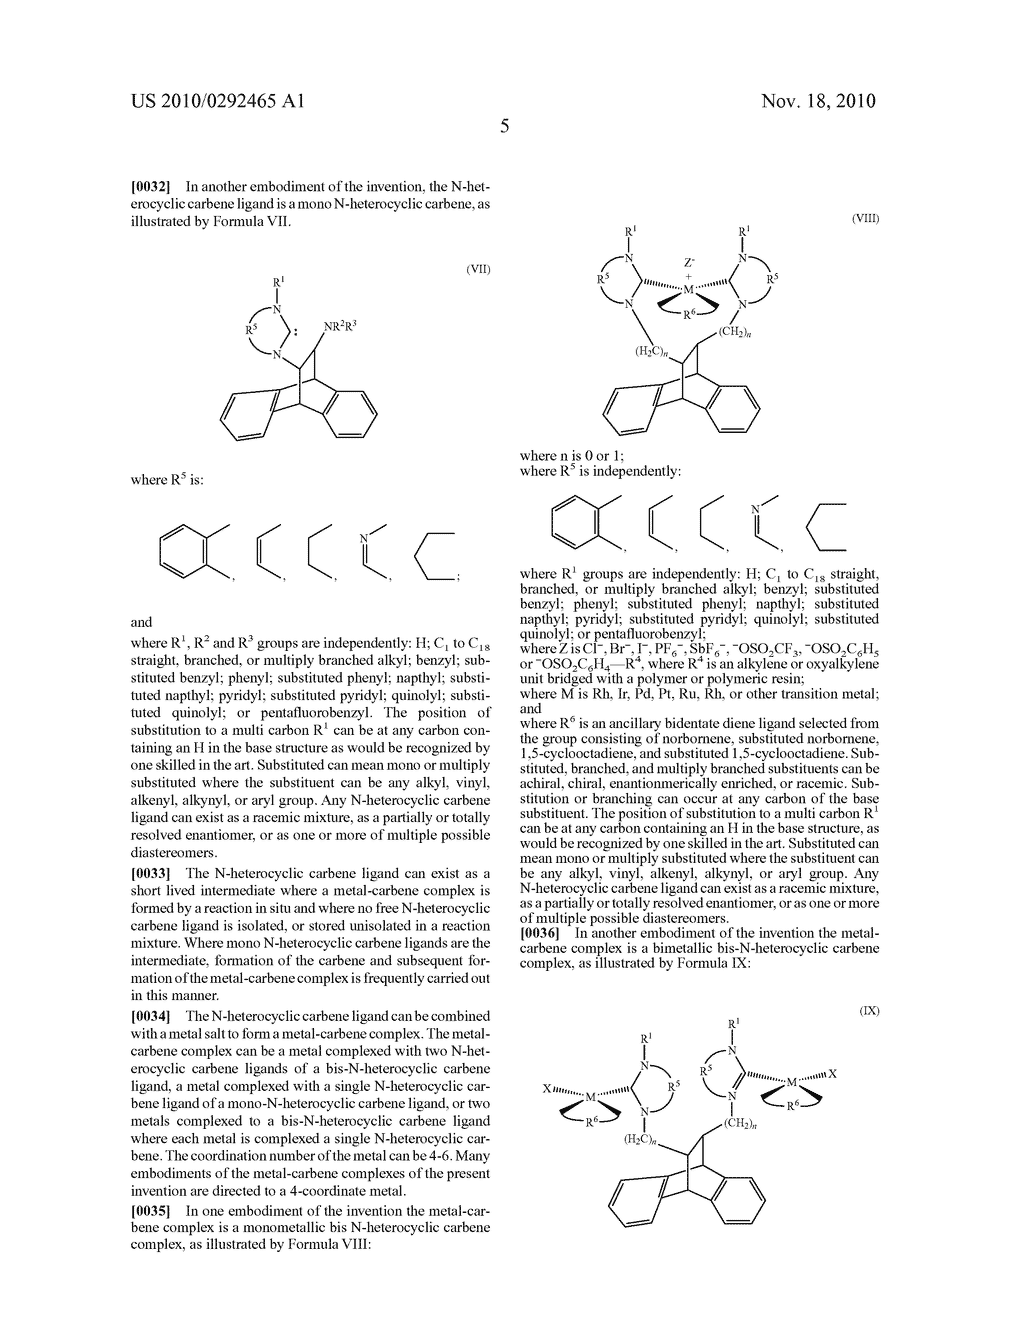 CATALYSTS CONTAINING N-HETEROCYCLIC CARBENES FOR ENANTIOSELECTIVE SYNTHESIS - diagram, schematic, and image 10